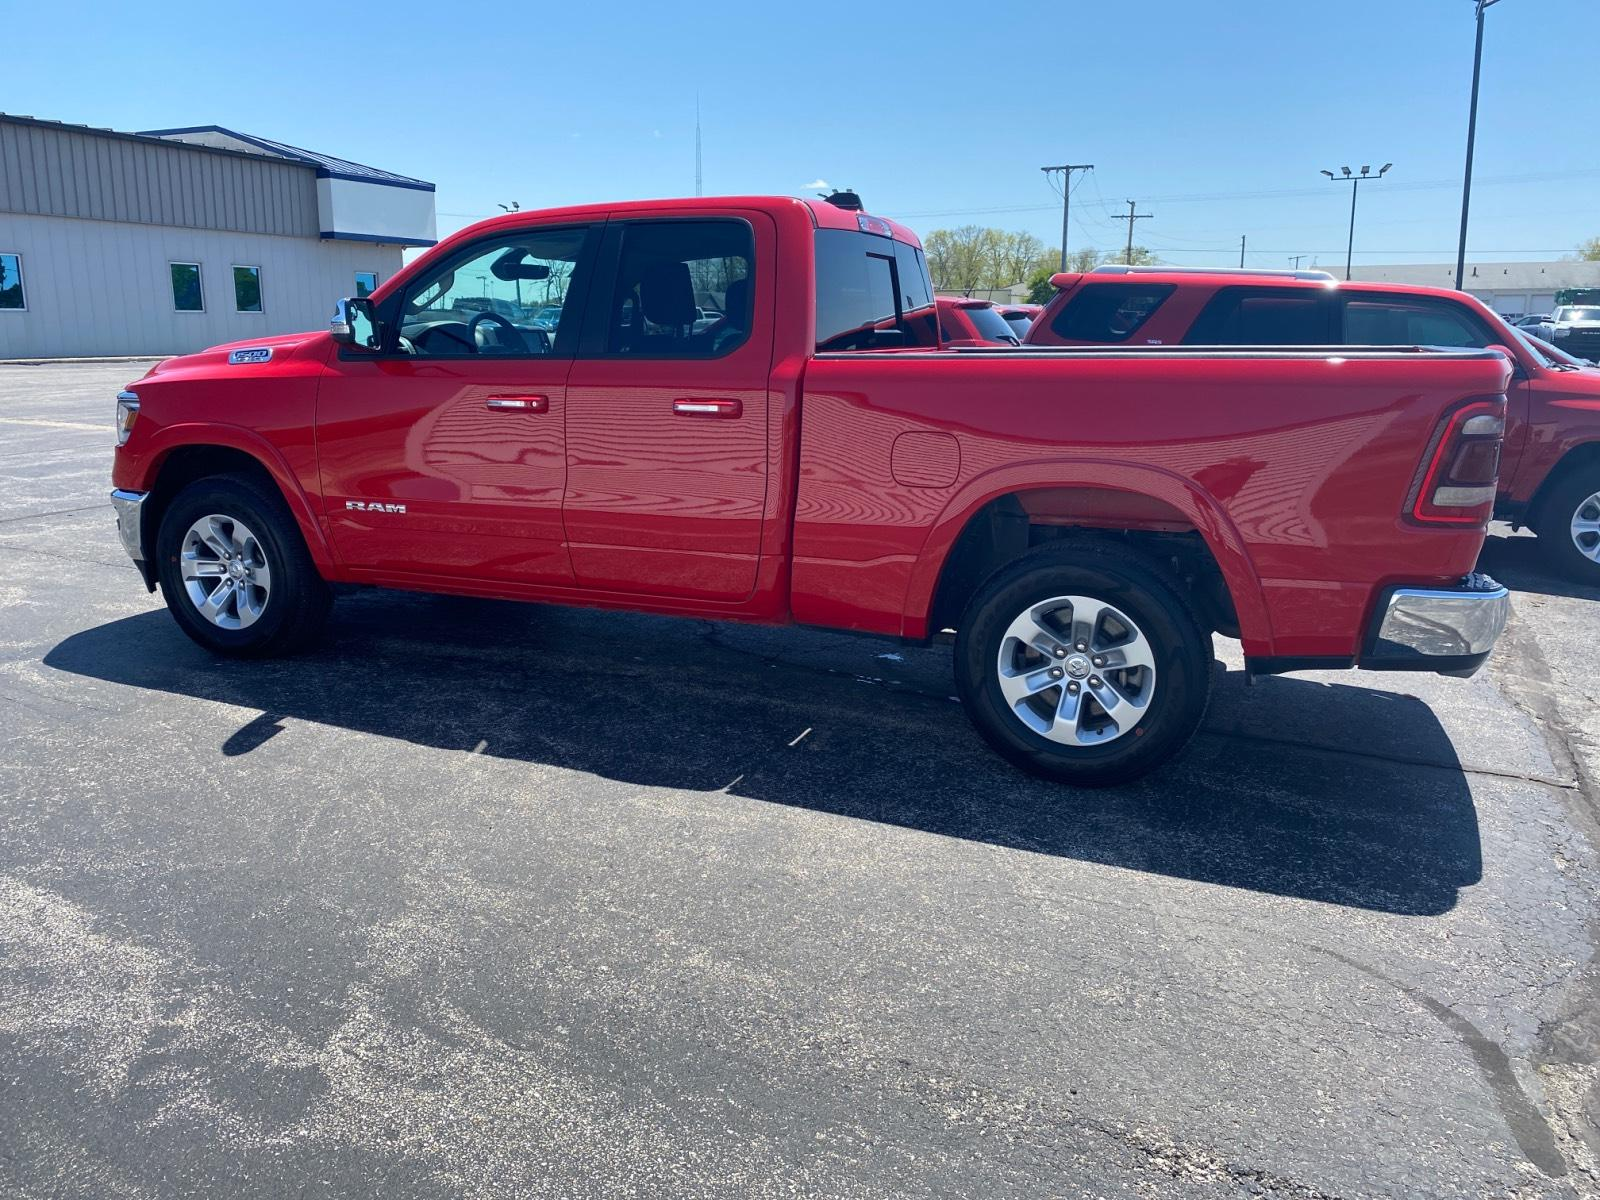 Certified Pre-Owned 2020 Ram 1500 Laramie 4x4 Quad Cab 6'4 Box